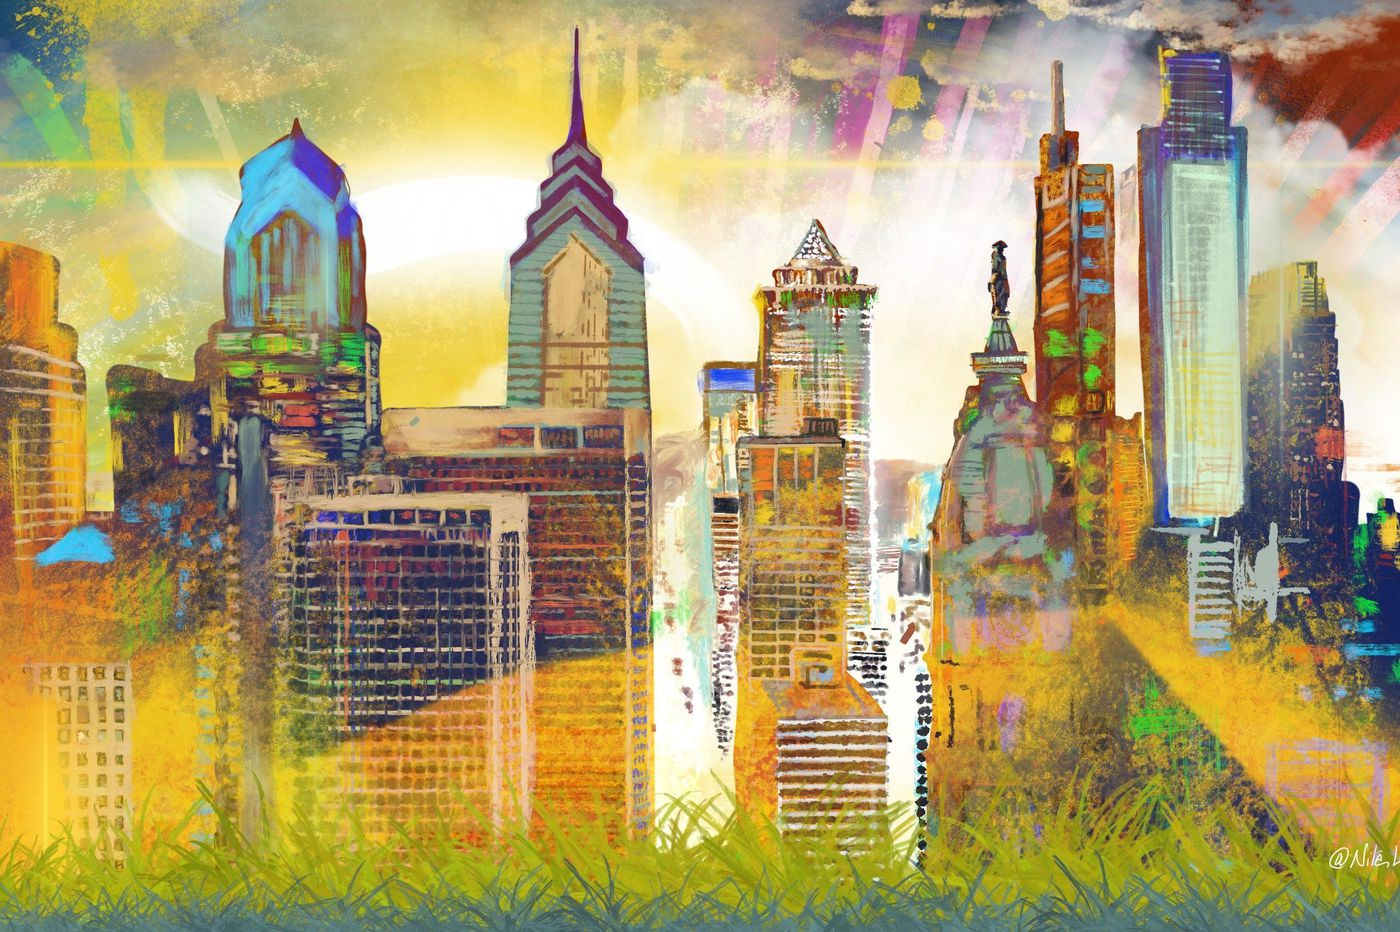 Mural Arts' ambitious new artwork exists entirely online, and your pics can be part of it